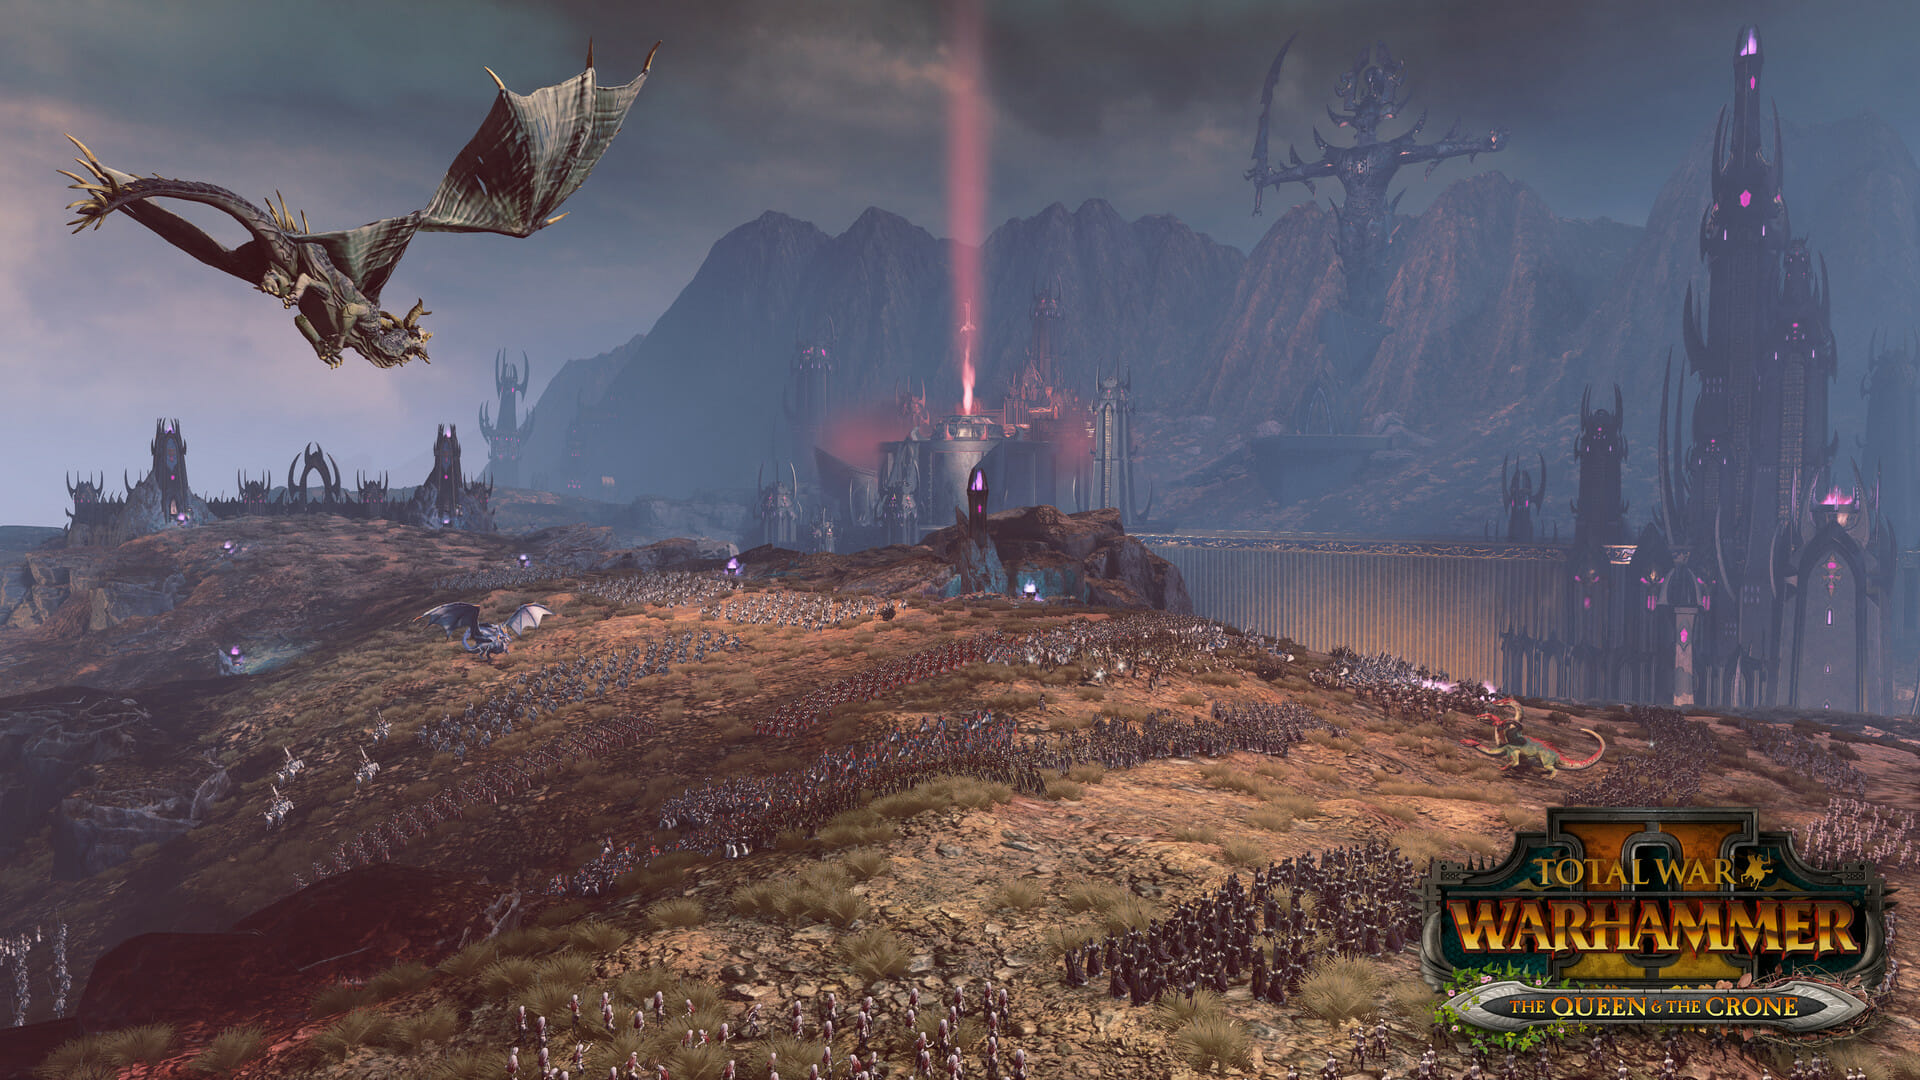 Gm Capital One >> Total War: Warhammer II - The Queen and The Crone DLC ...